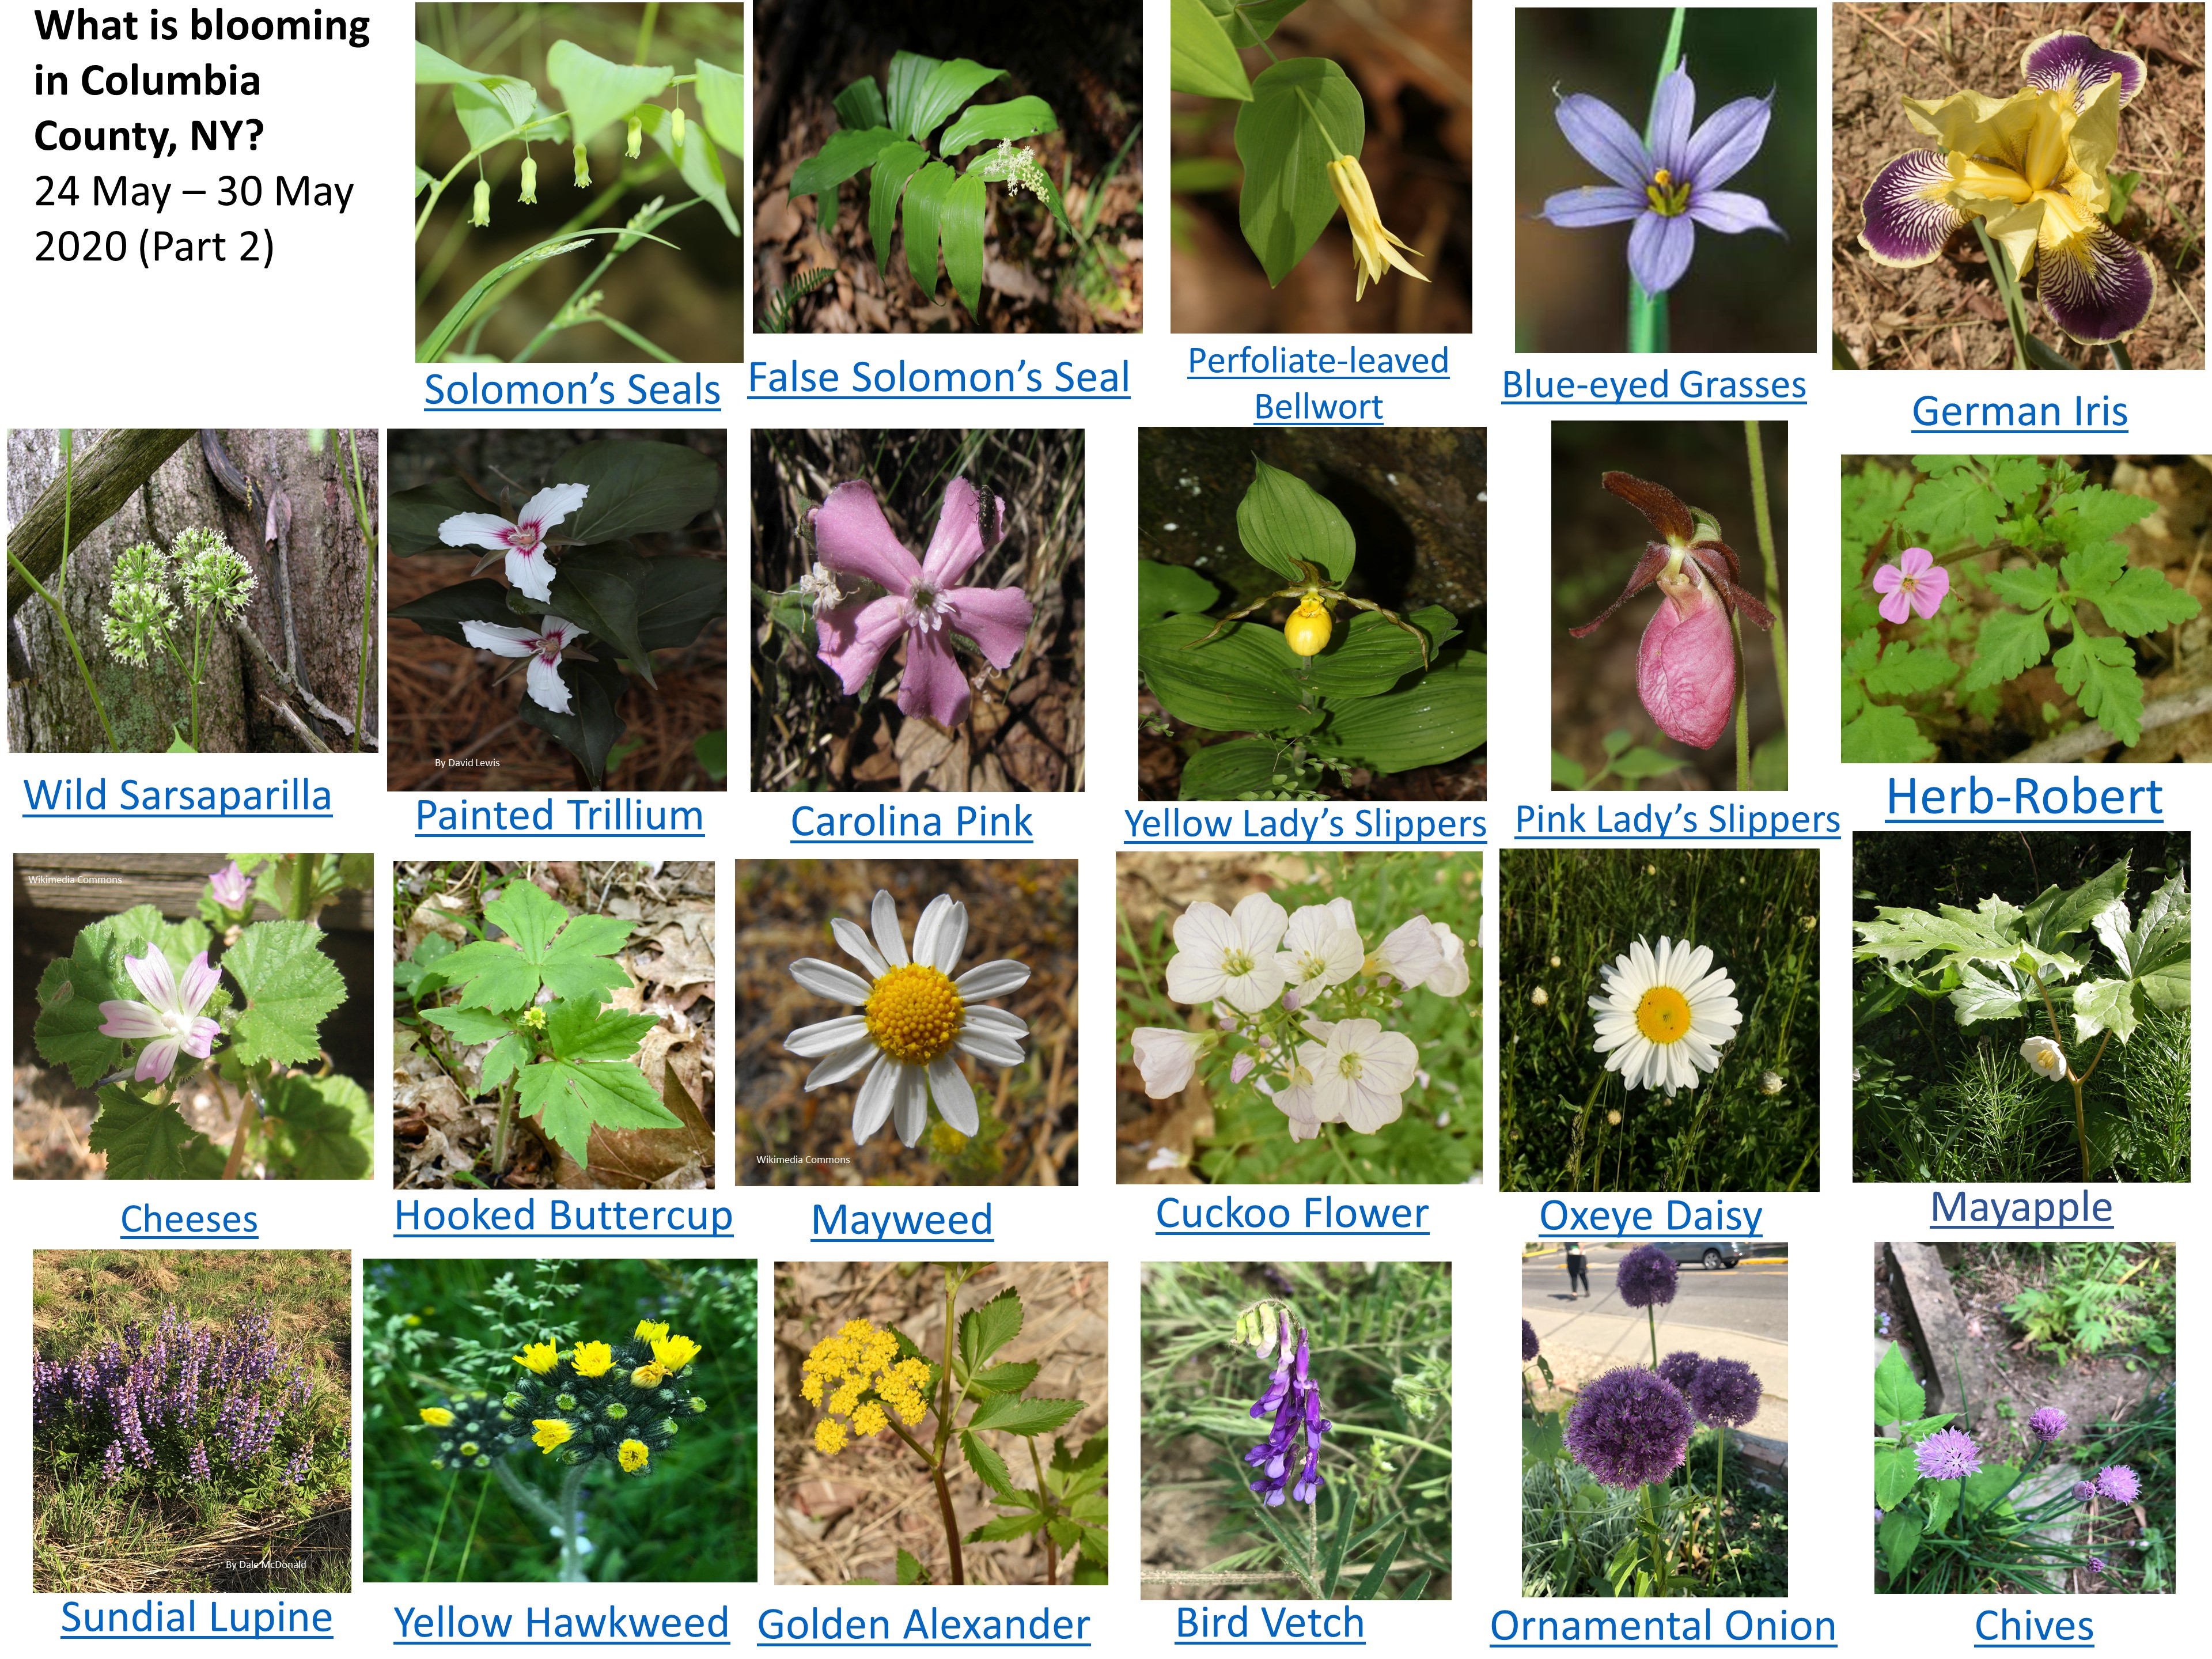 Spring Flowers in bloom in Columbia County NY 24 - 30 May 2020 Part 2